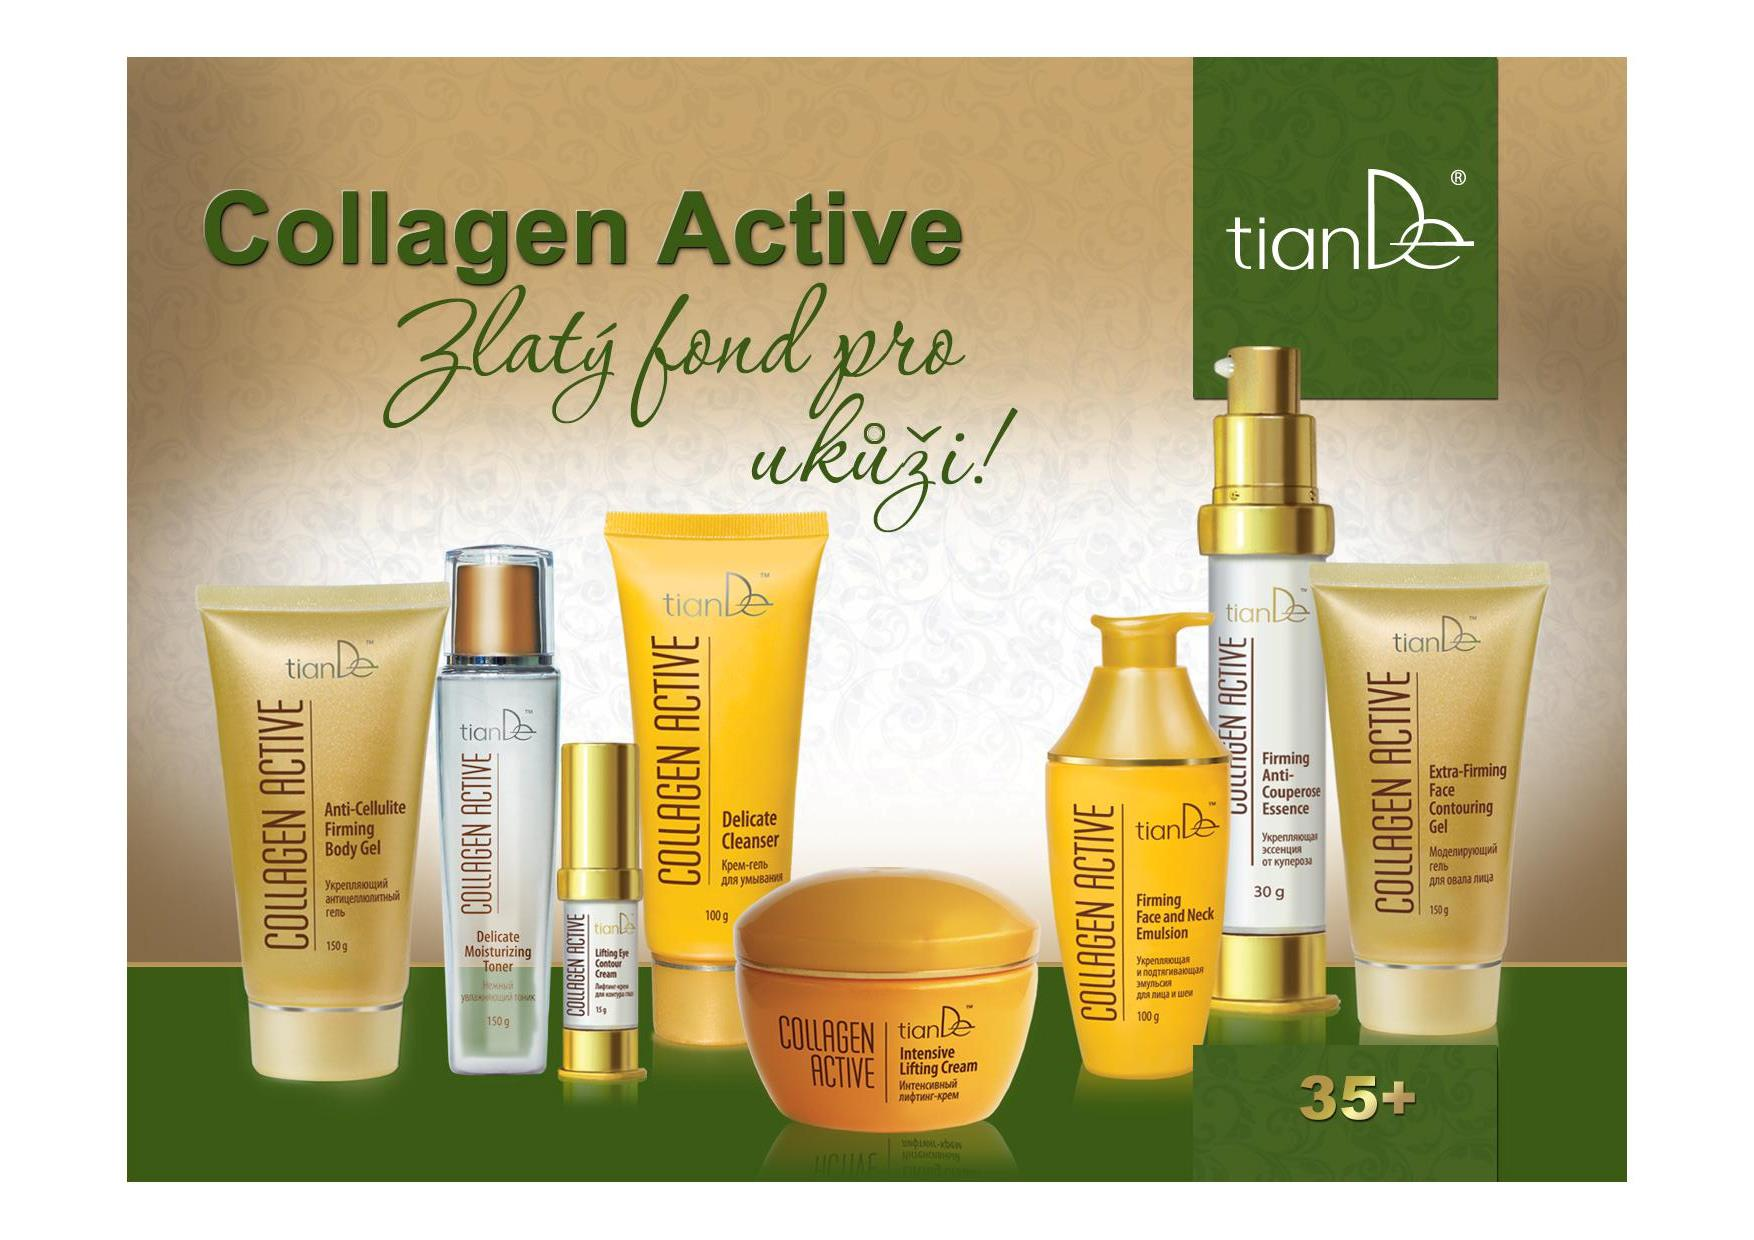 Collagen_active01